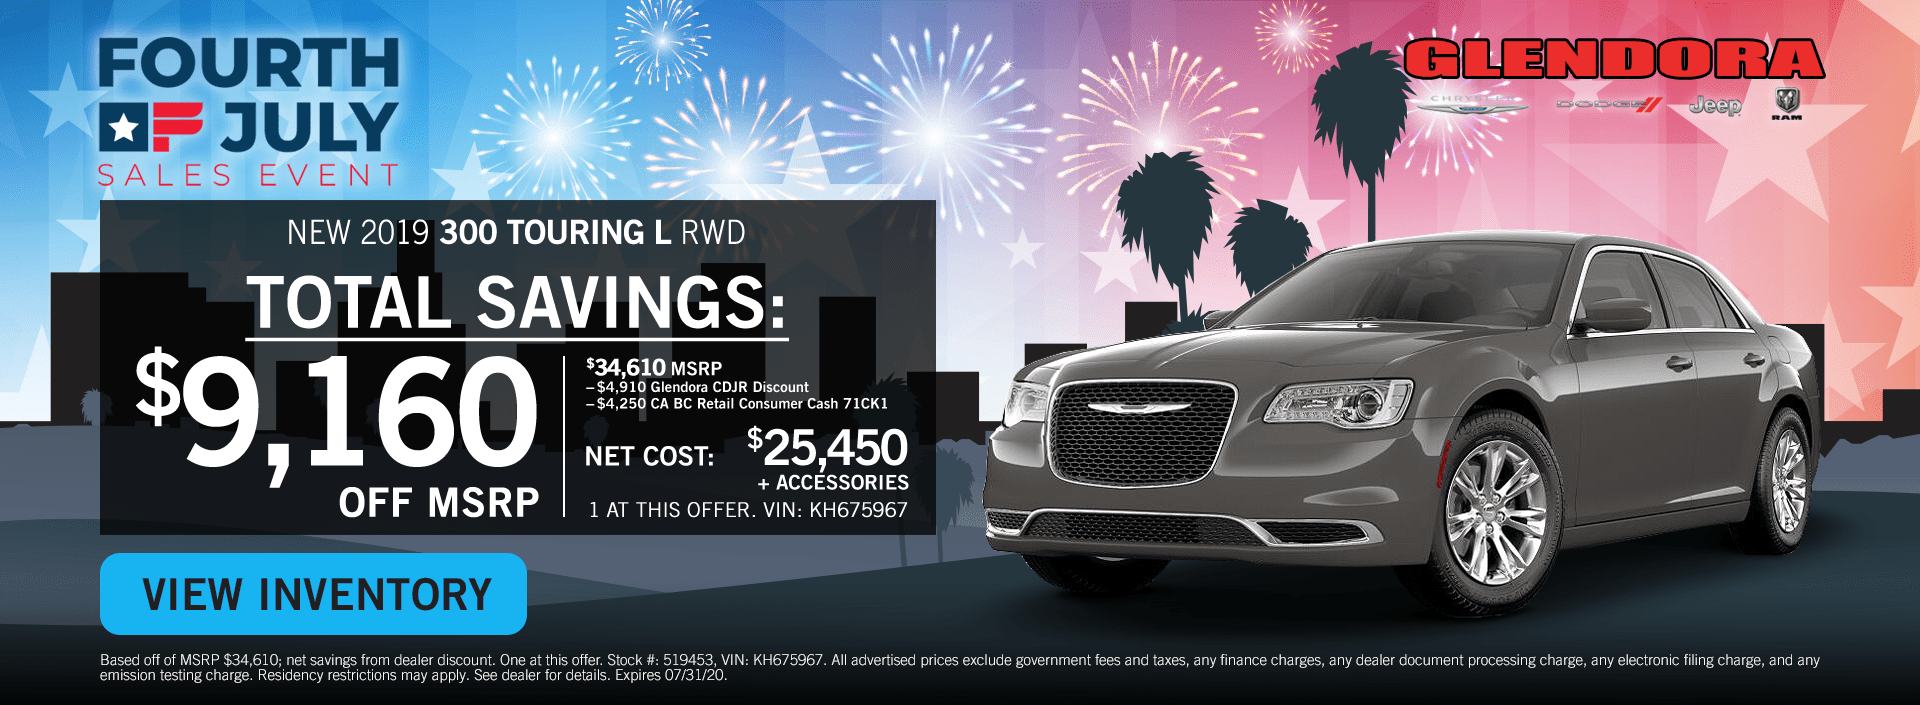 4th of July Sales Chrysler Deals